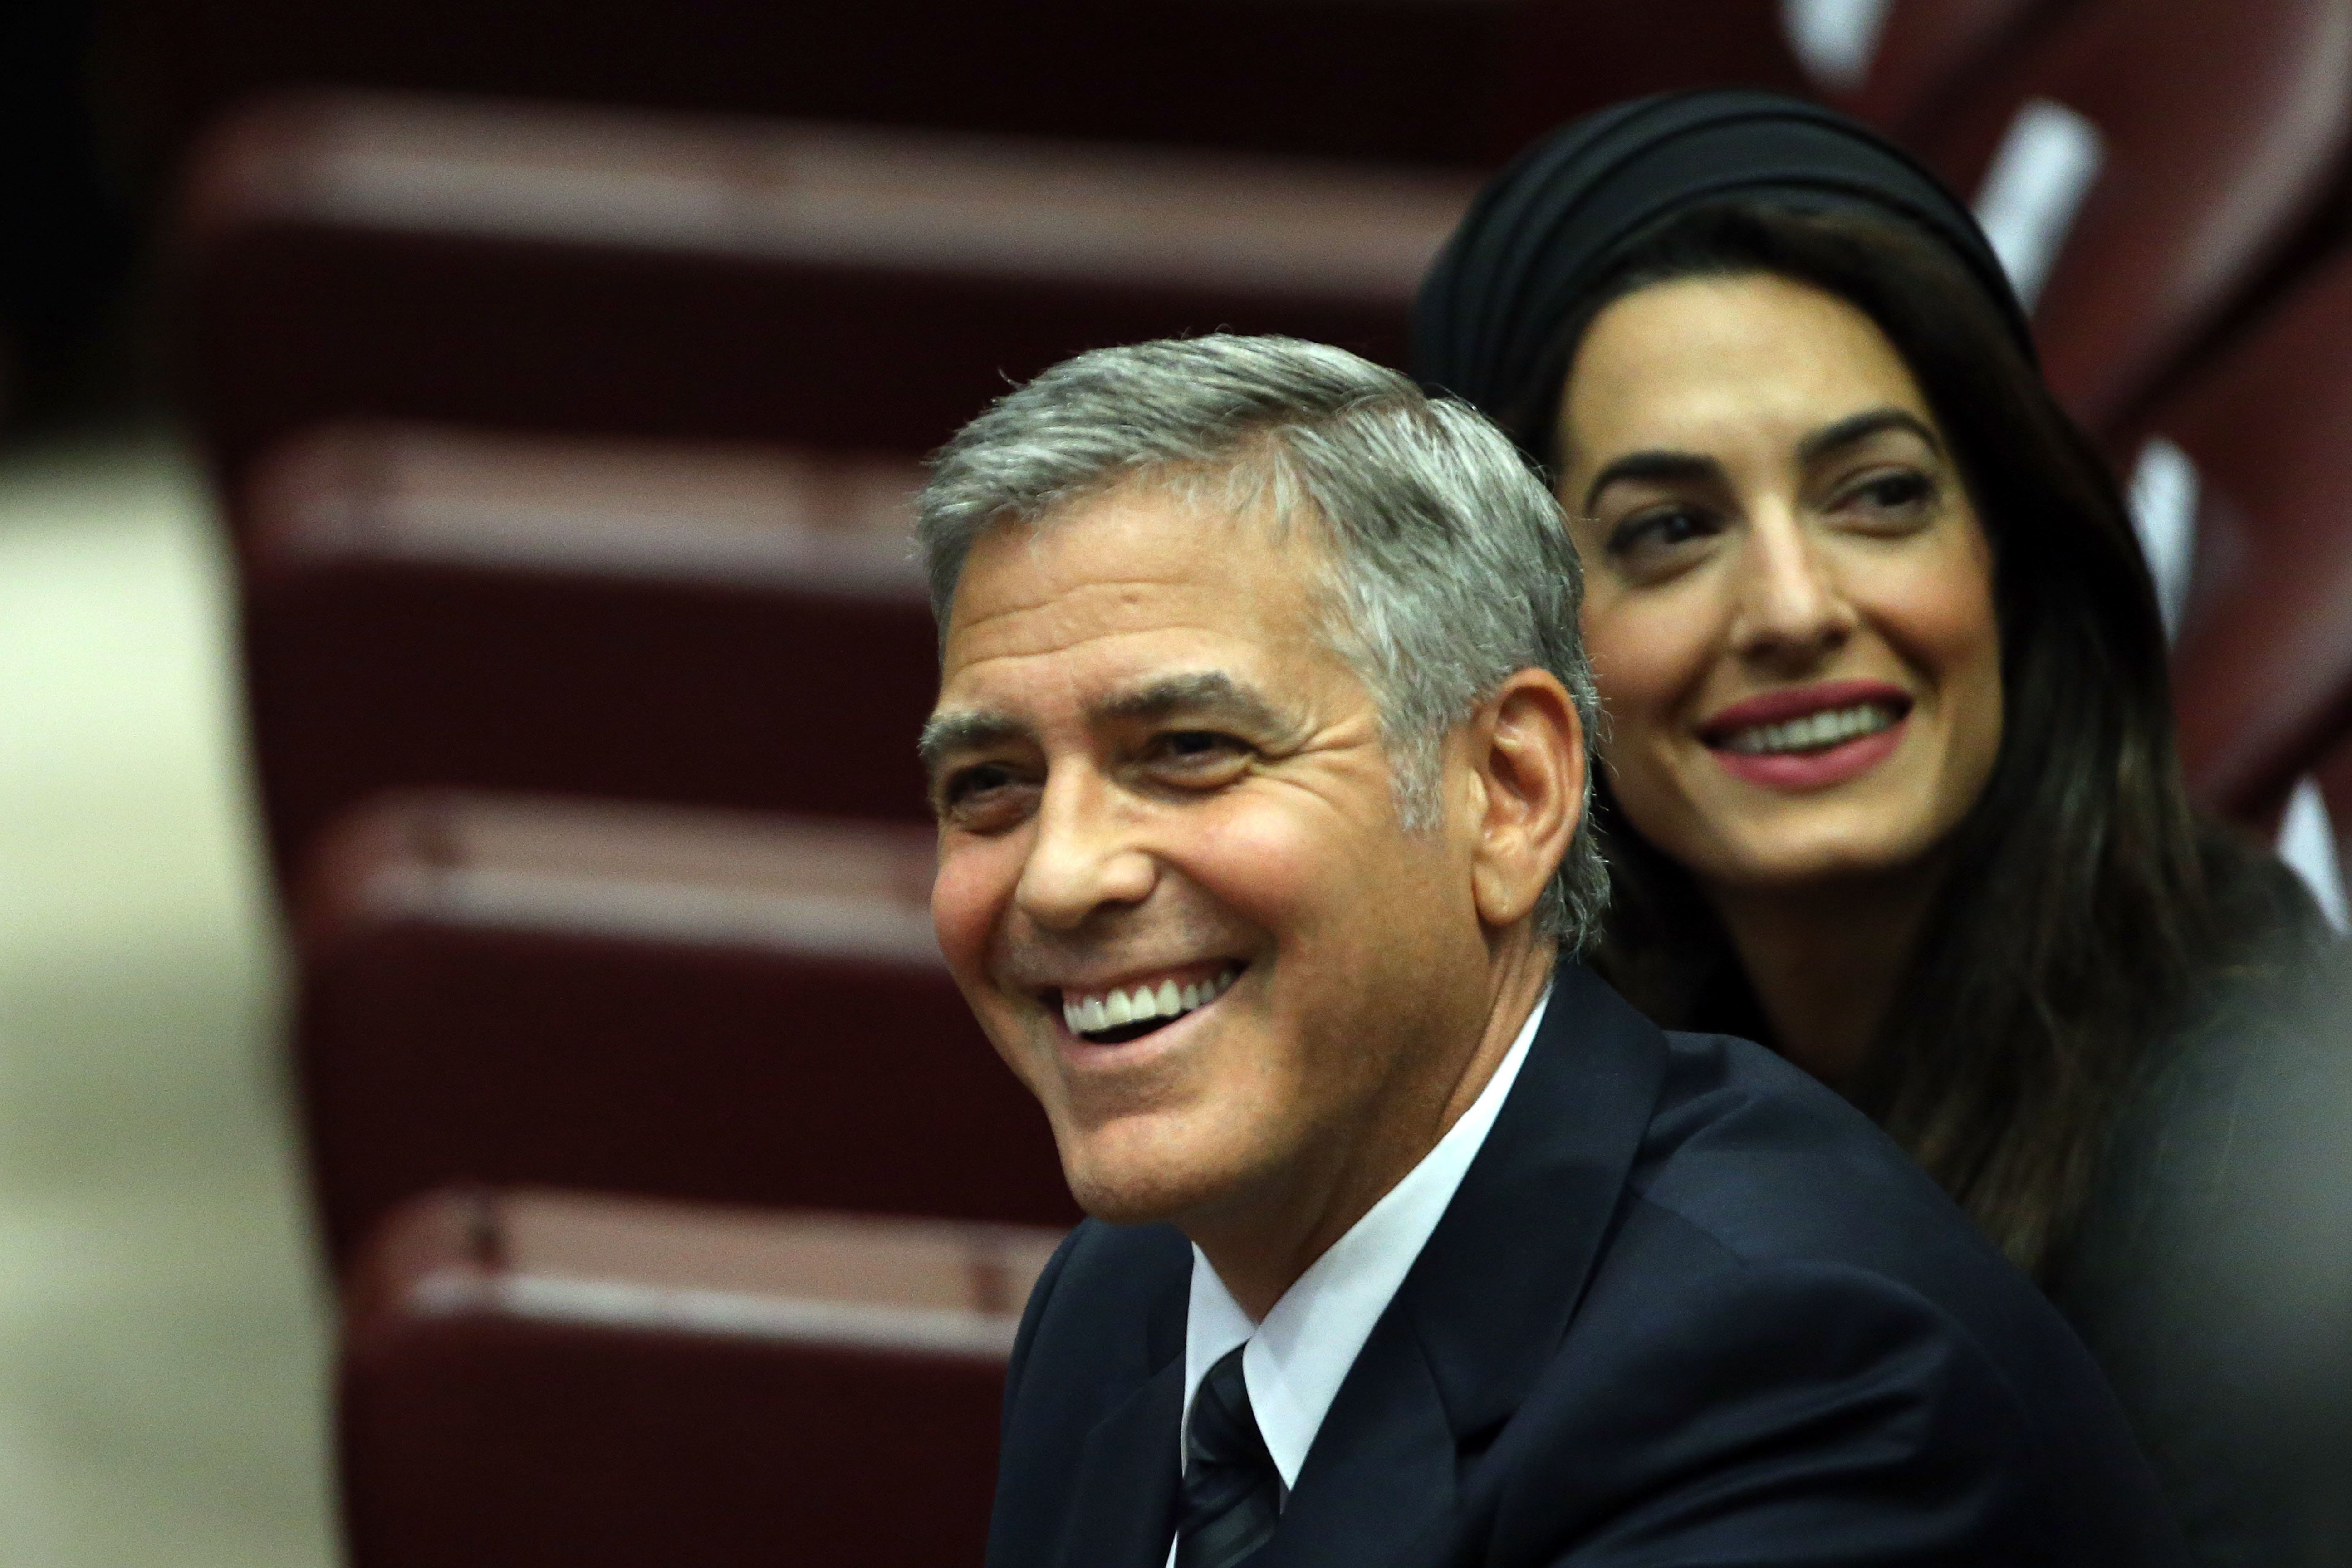 Watch Out, World, Clooney Twins Are On The